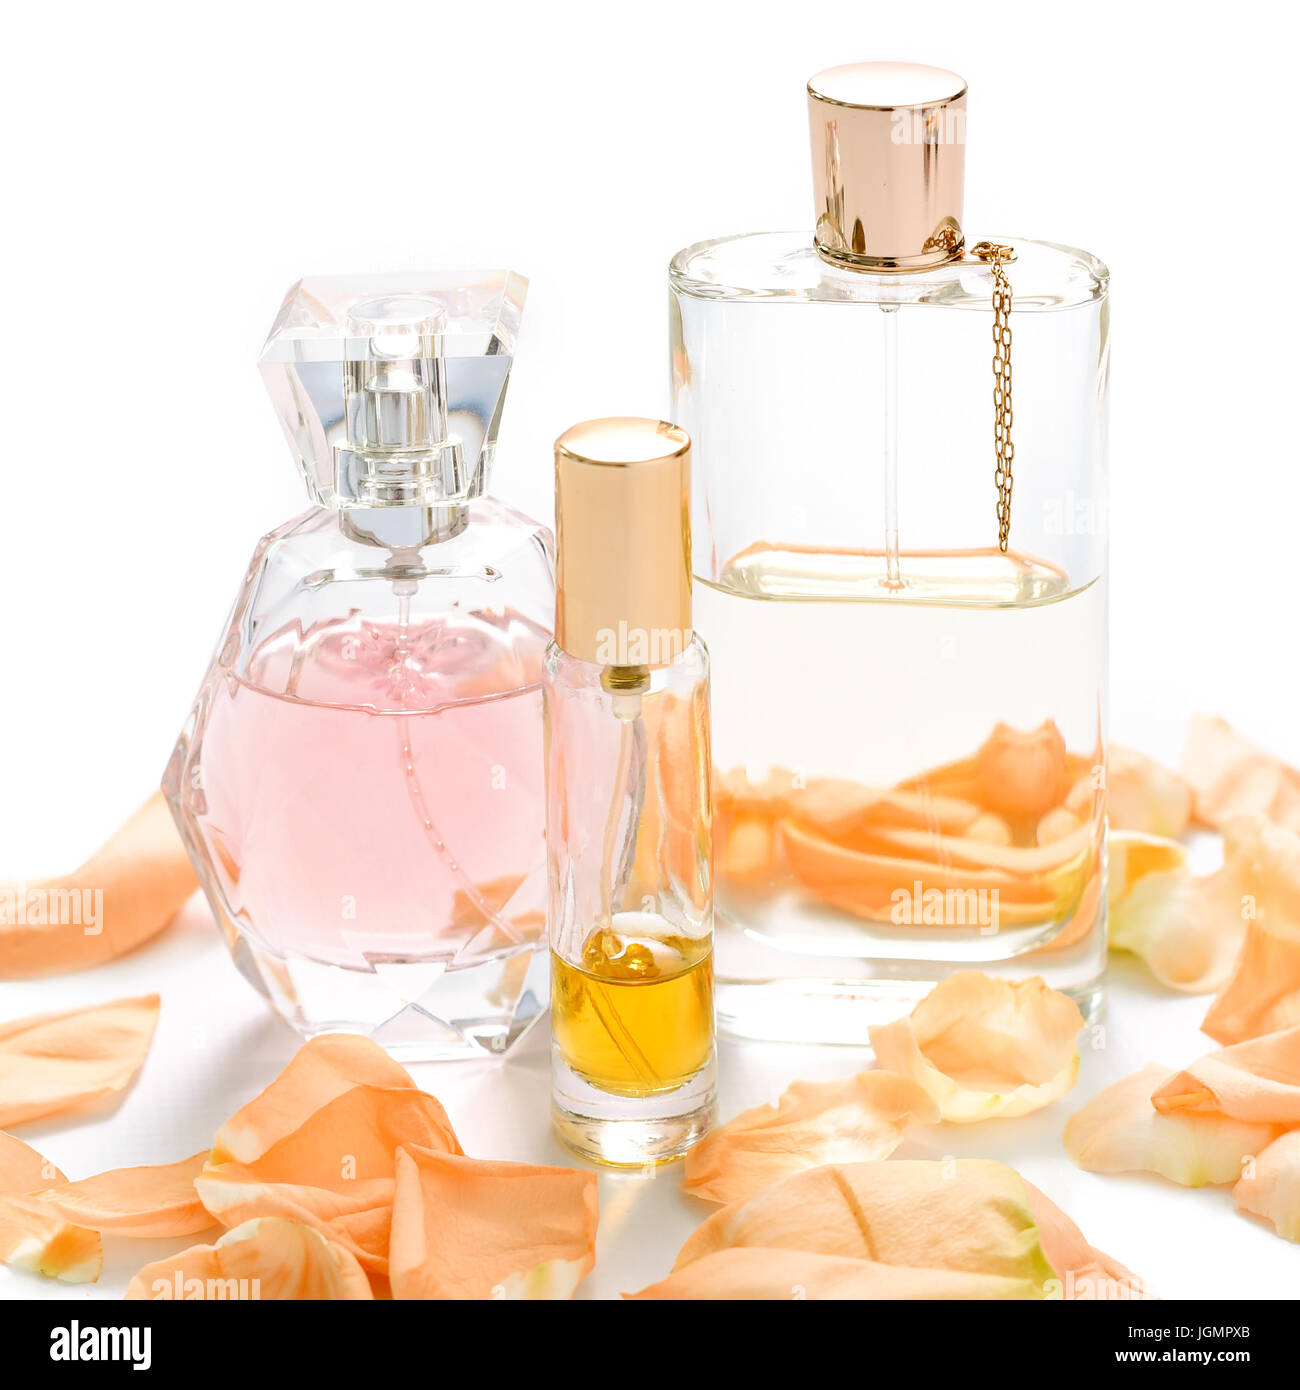 Perfume bottles with flower petals on light background. Perfumery, fragrance collection. Women accessories. - Stock Image